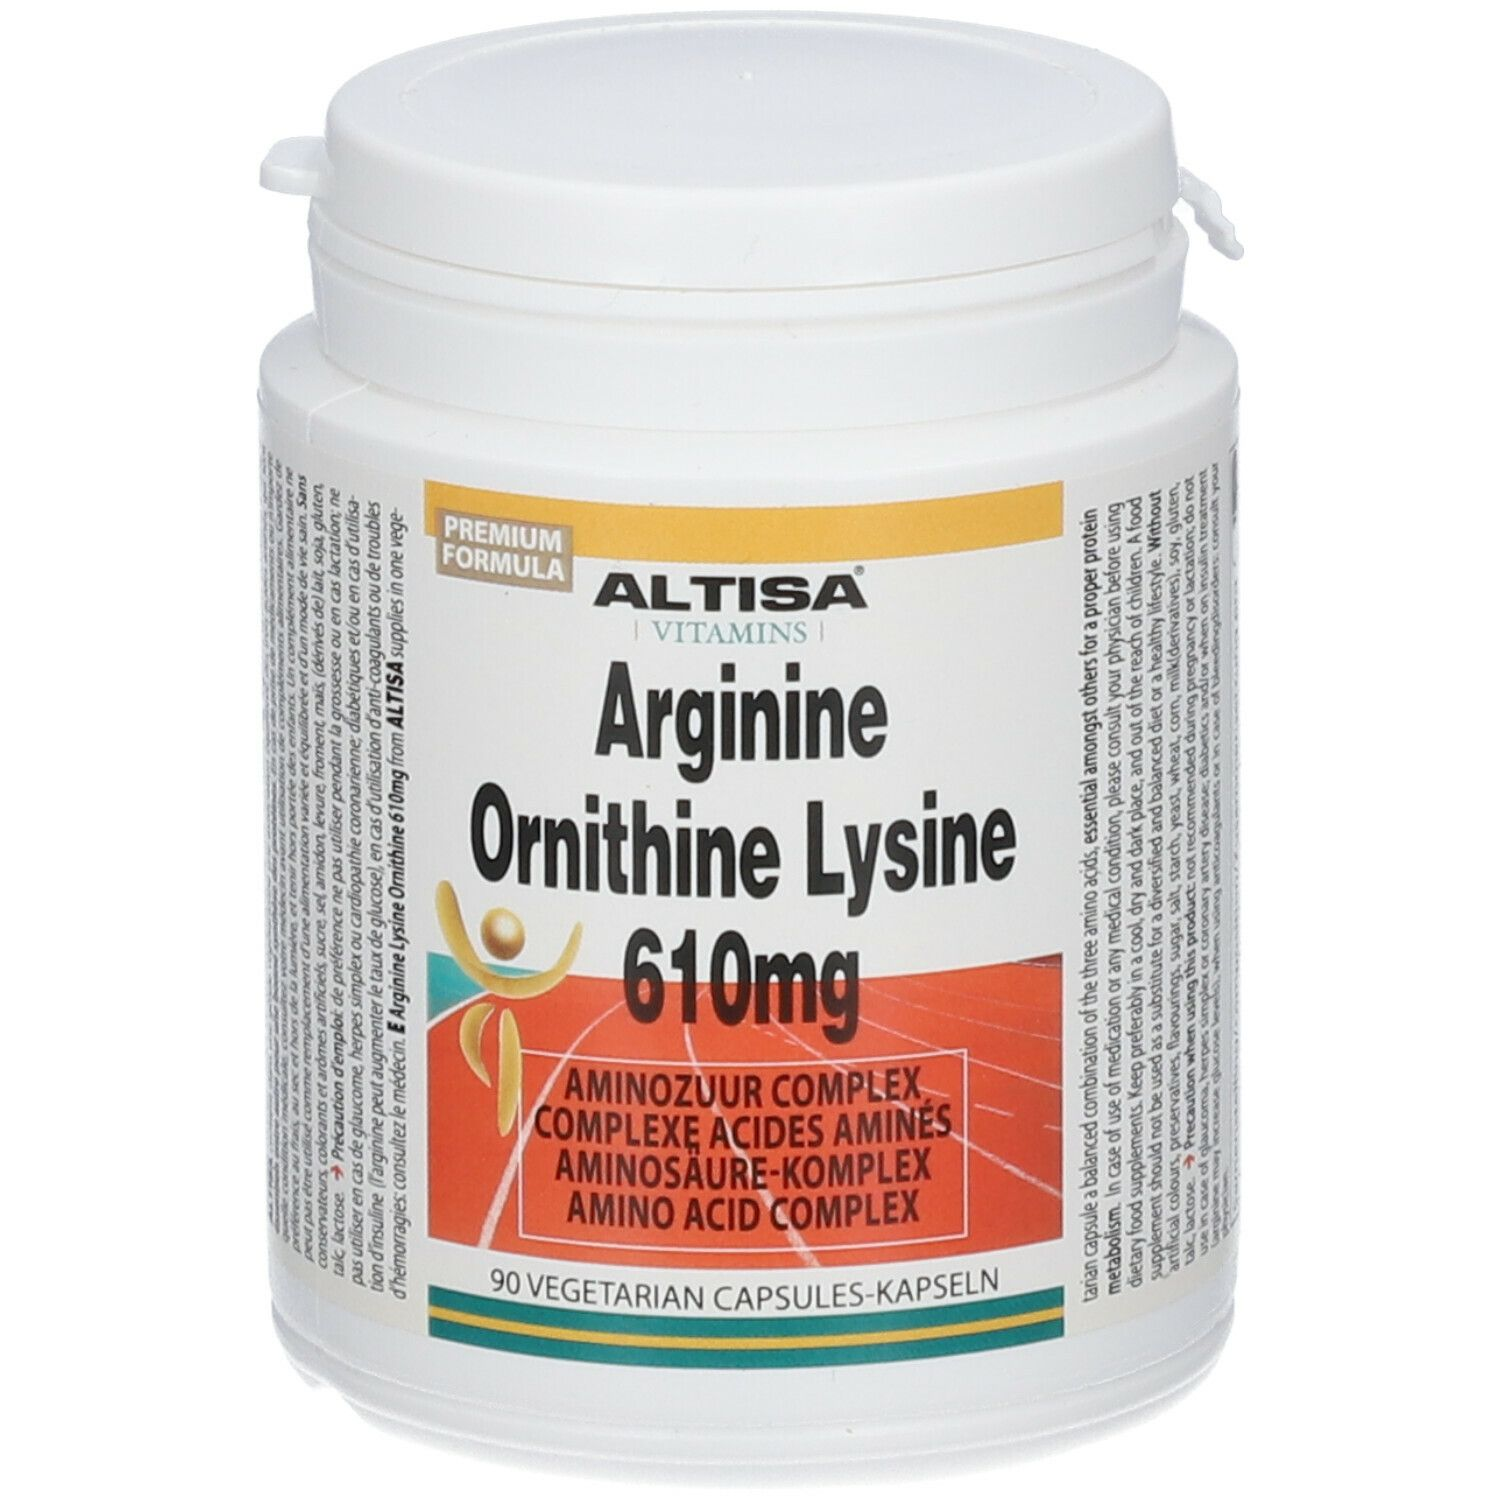 Image of ALTISA® Arginine Ornithine Lysine 610 mg